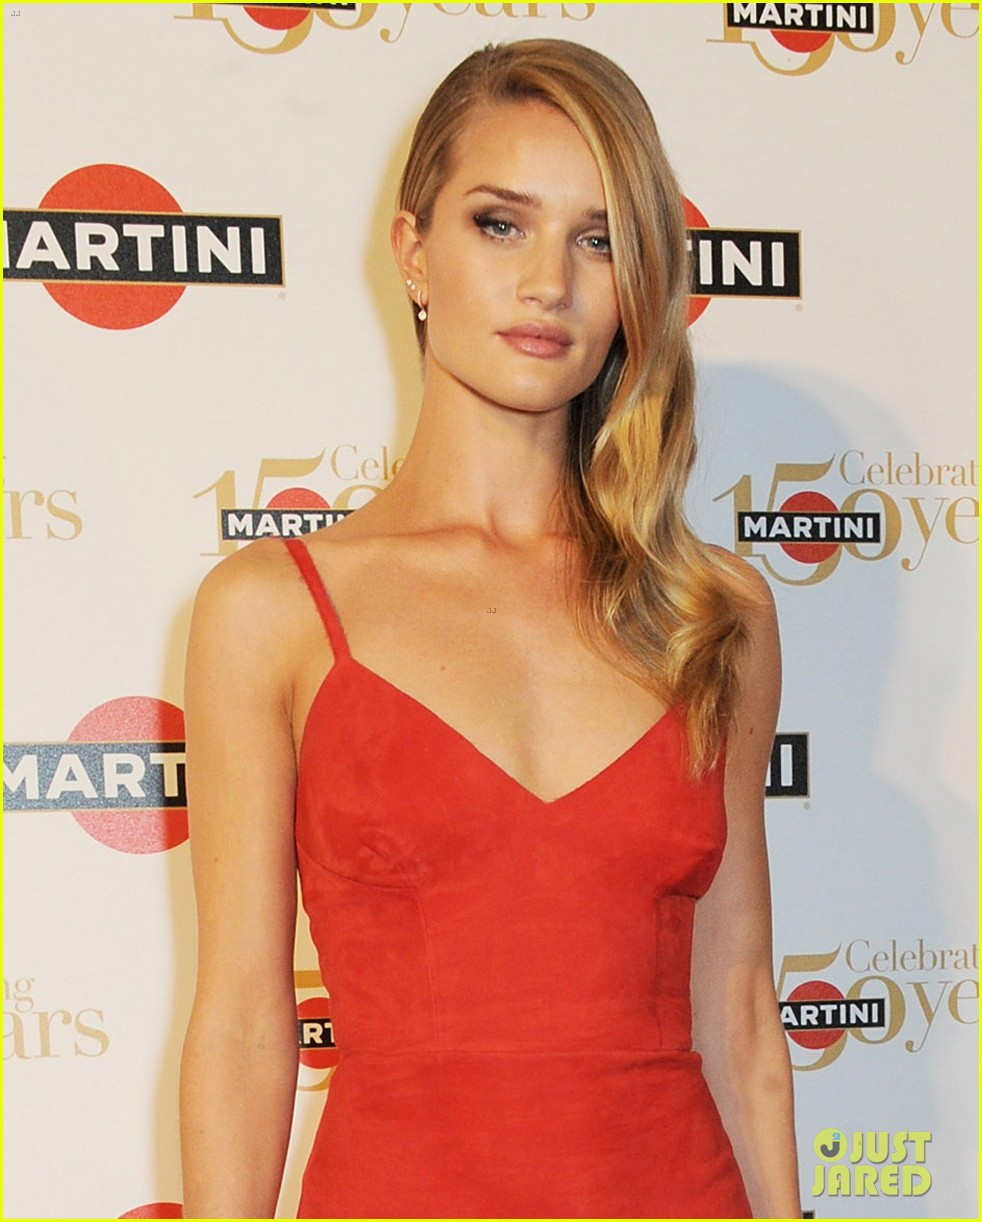 rosie huntington whiteley martini 150th anniversary gala 04